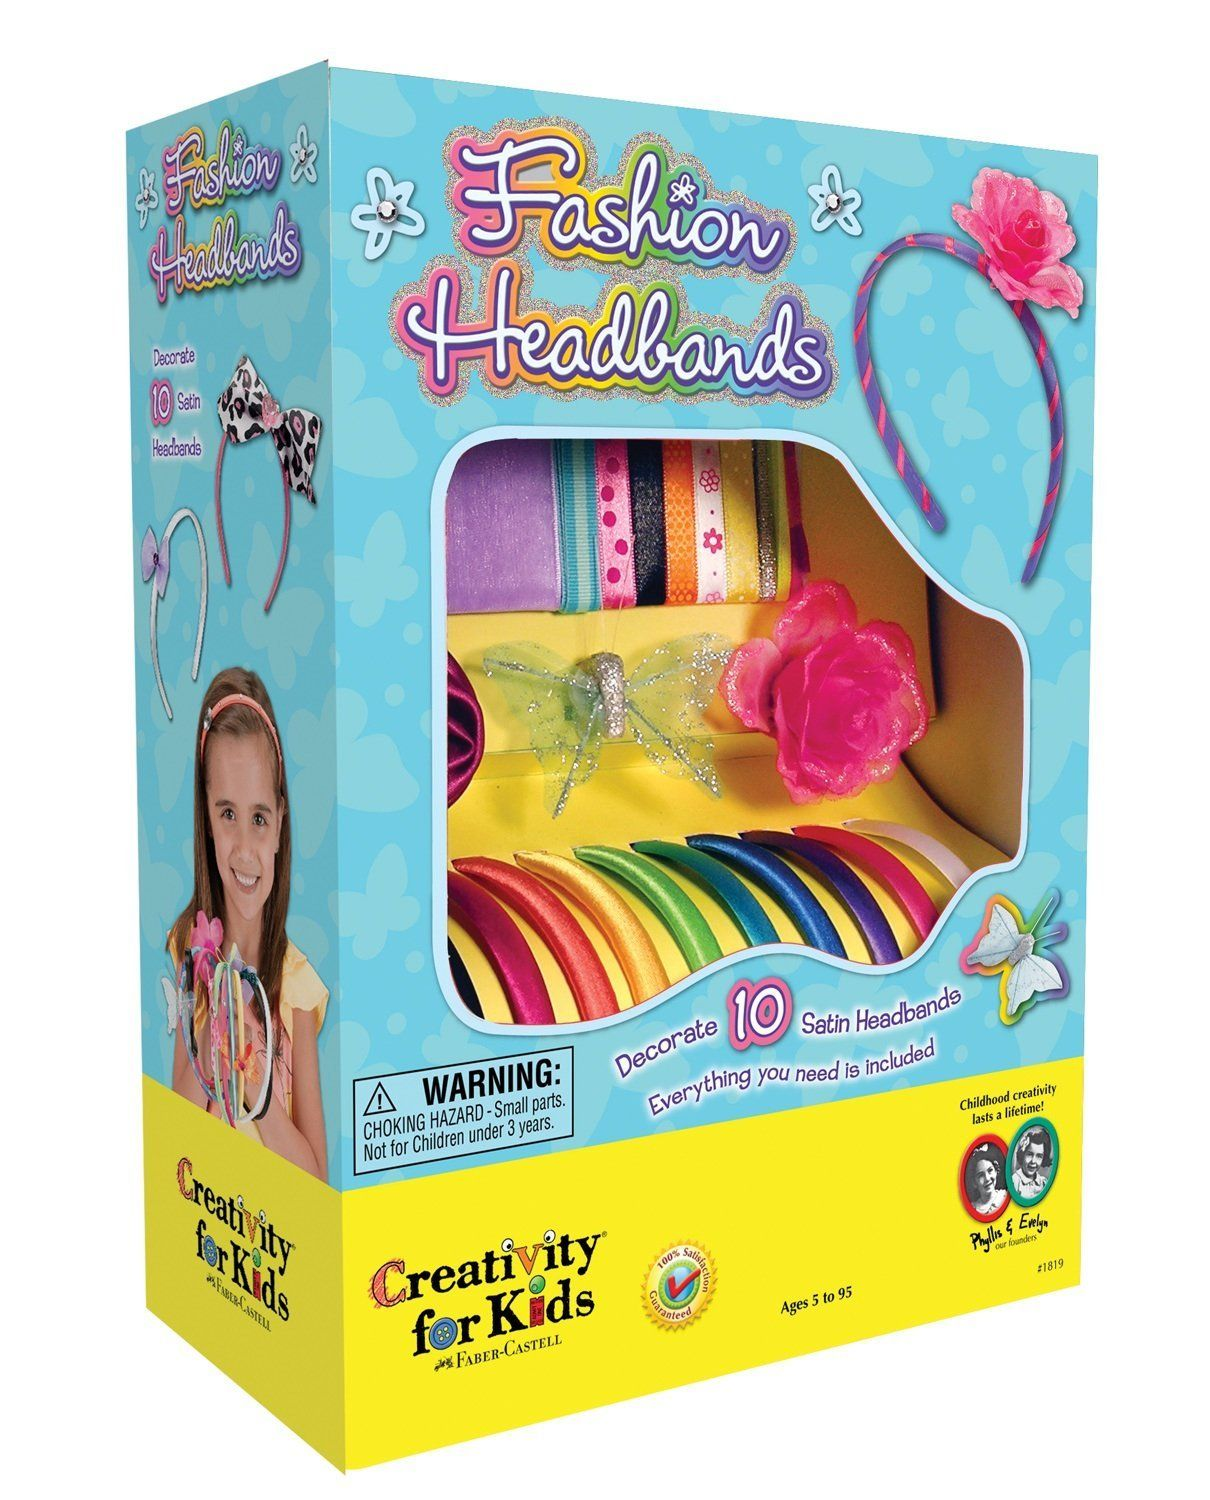 Best Gifts for 6 Year Old Girls in 2017 Toys, Birthdays